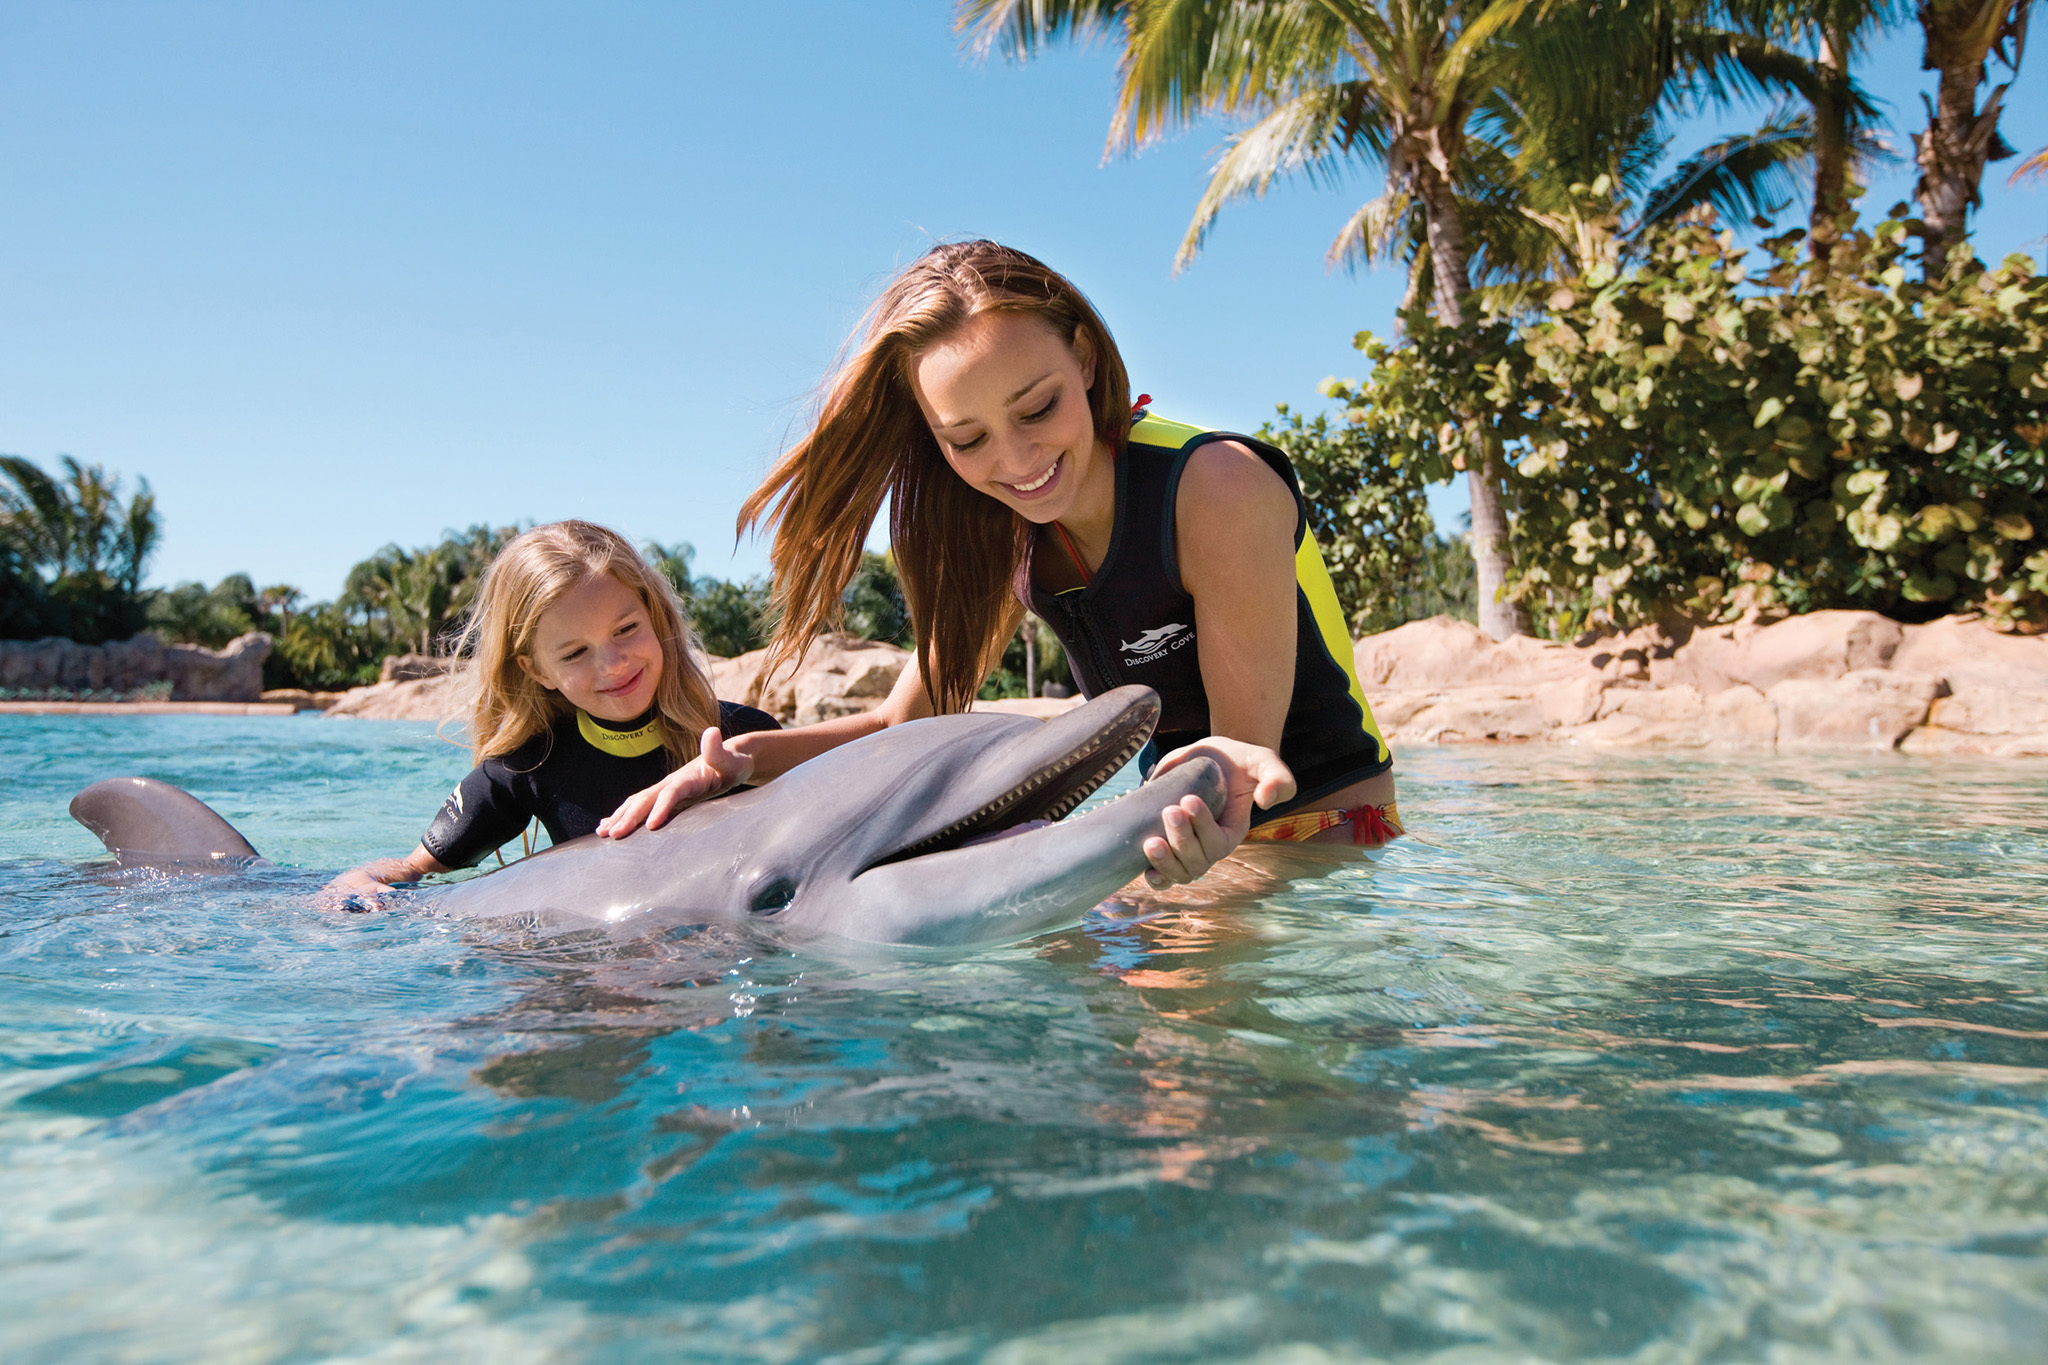 10. Discovery Cove